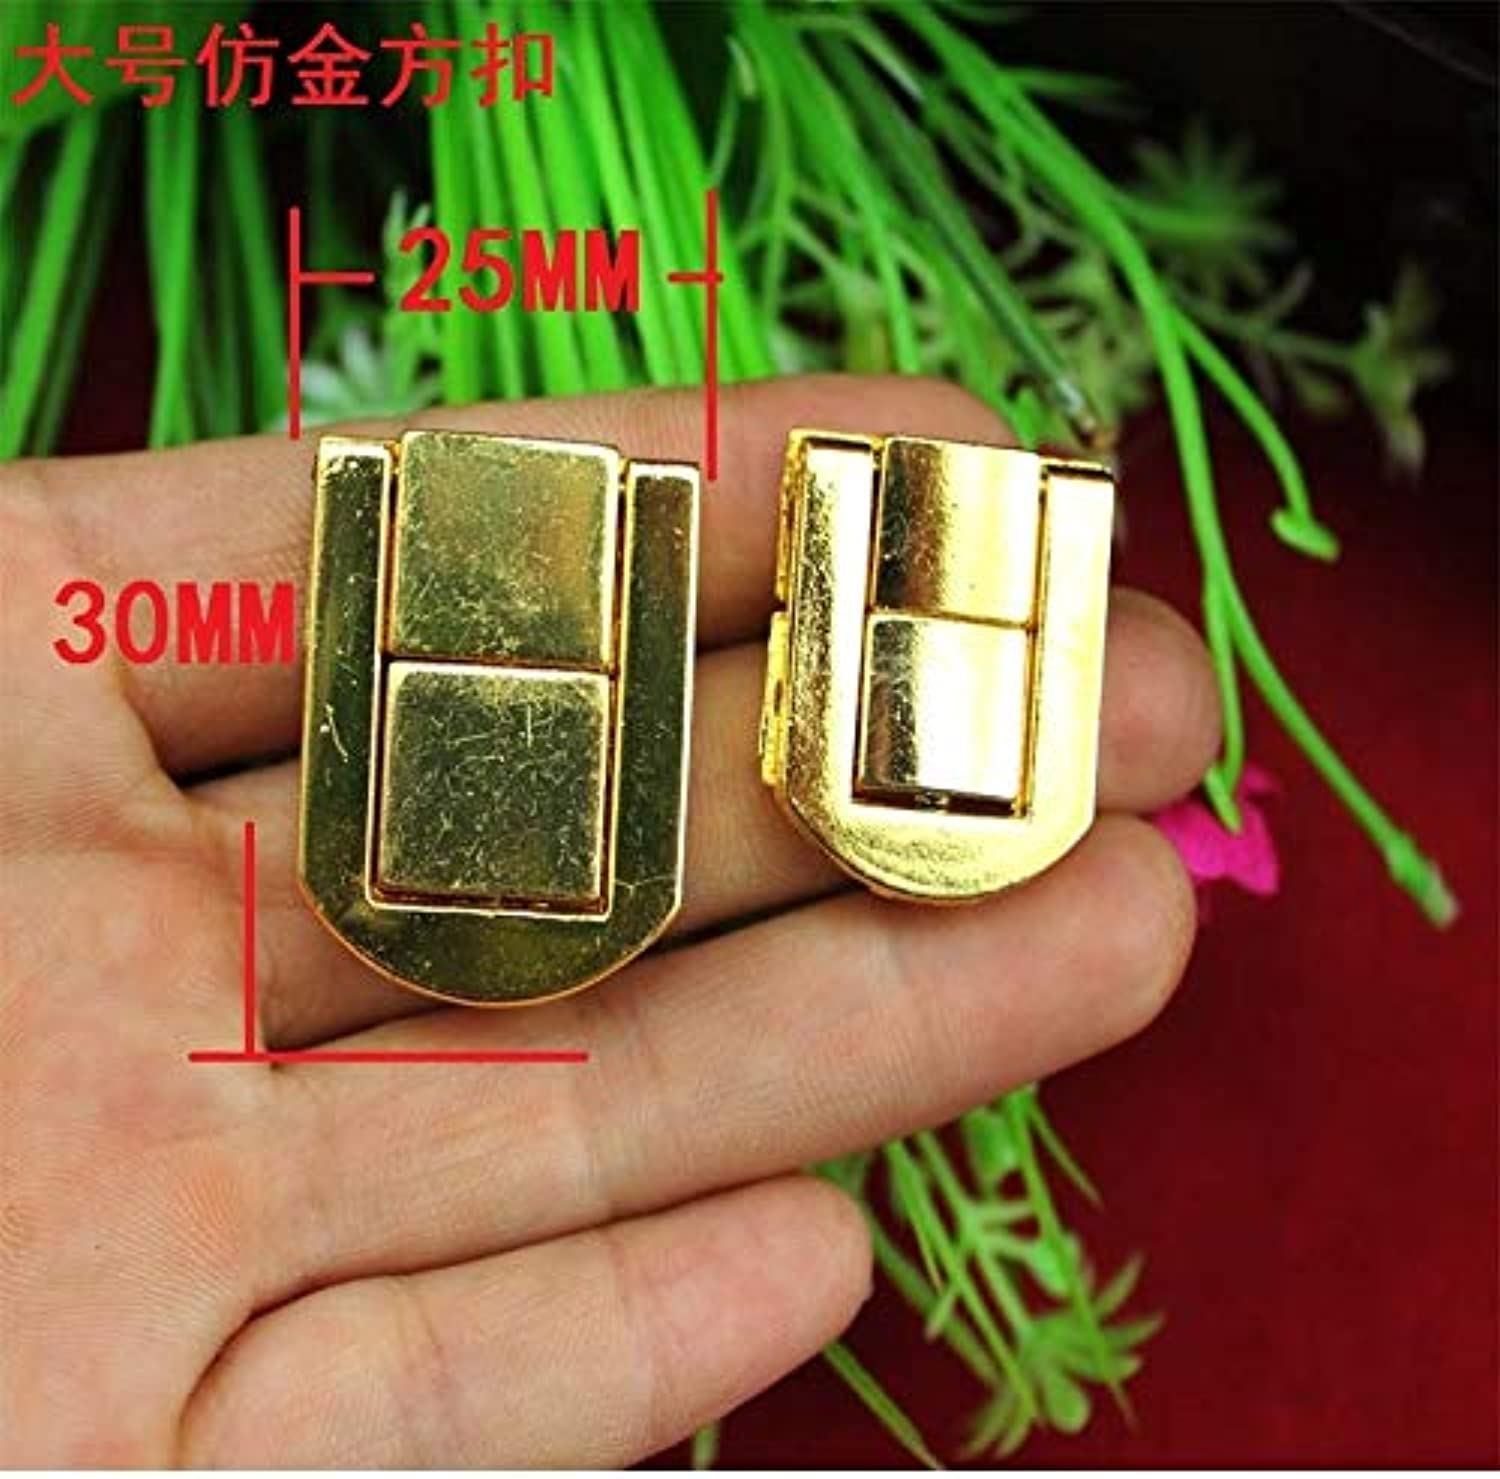 25  30mm Large Imitation gold Square Buckle Wooden Gift Box Lock Wine Lock Package Decoration Accessories Wholesale